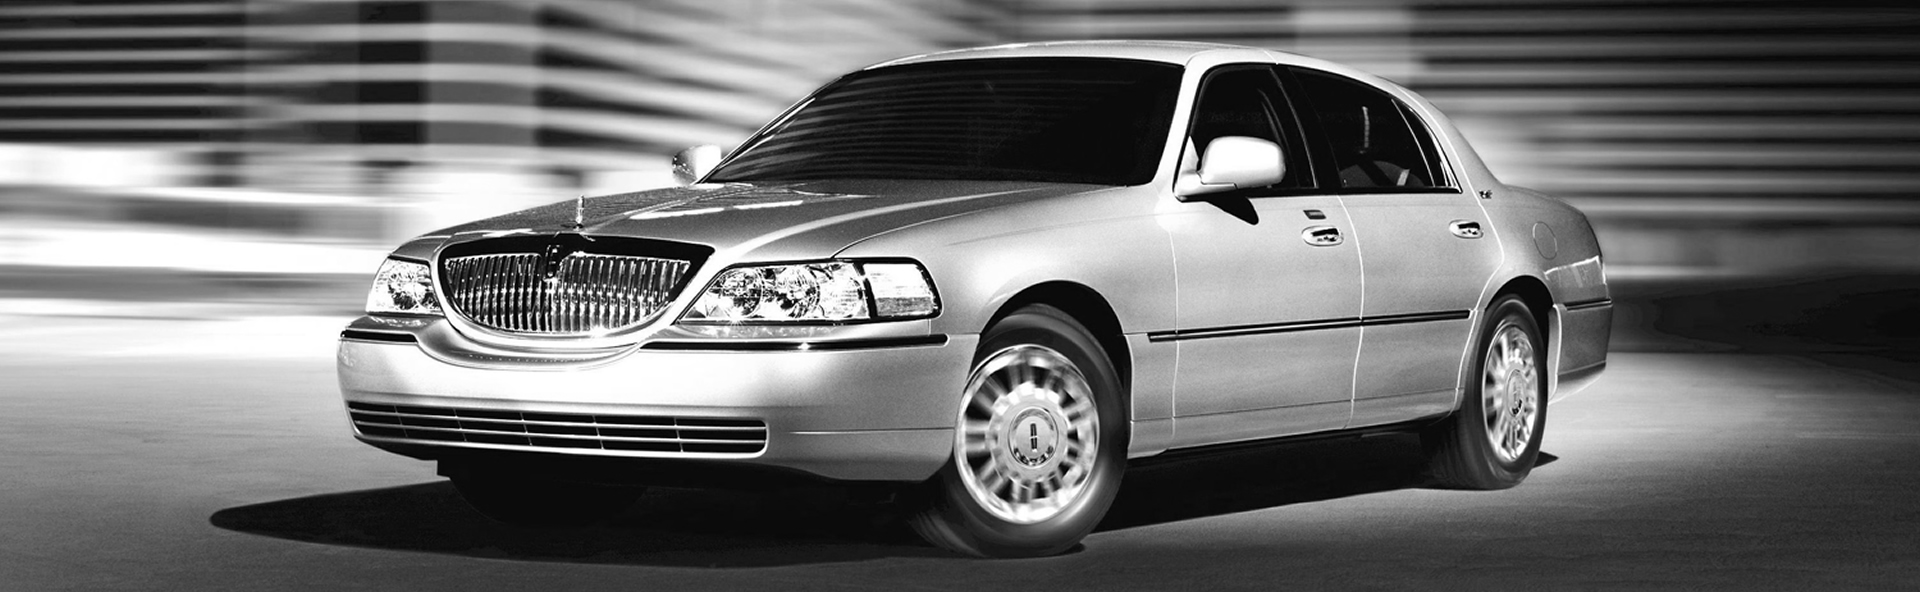 Uptown Limo & Car Services | limo, car service, and airport